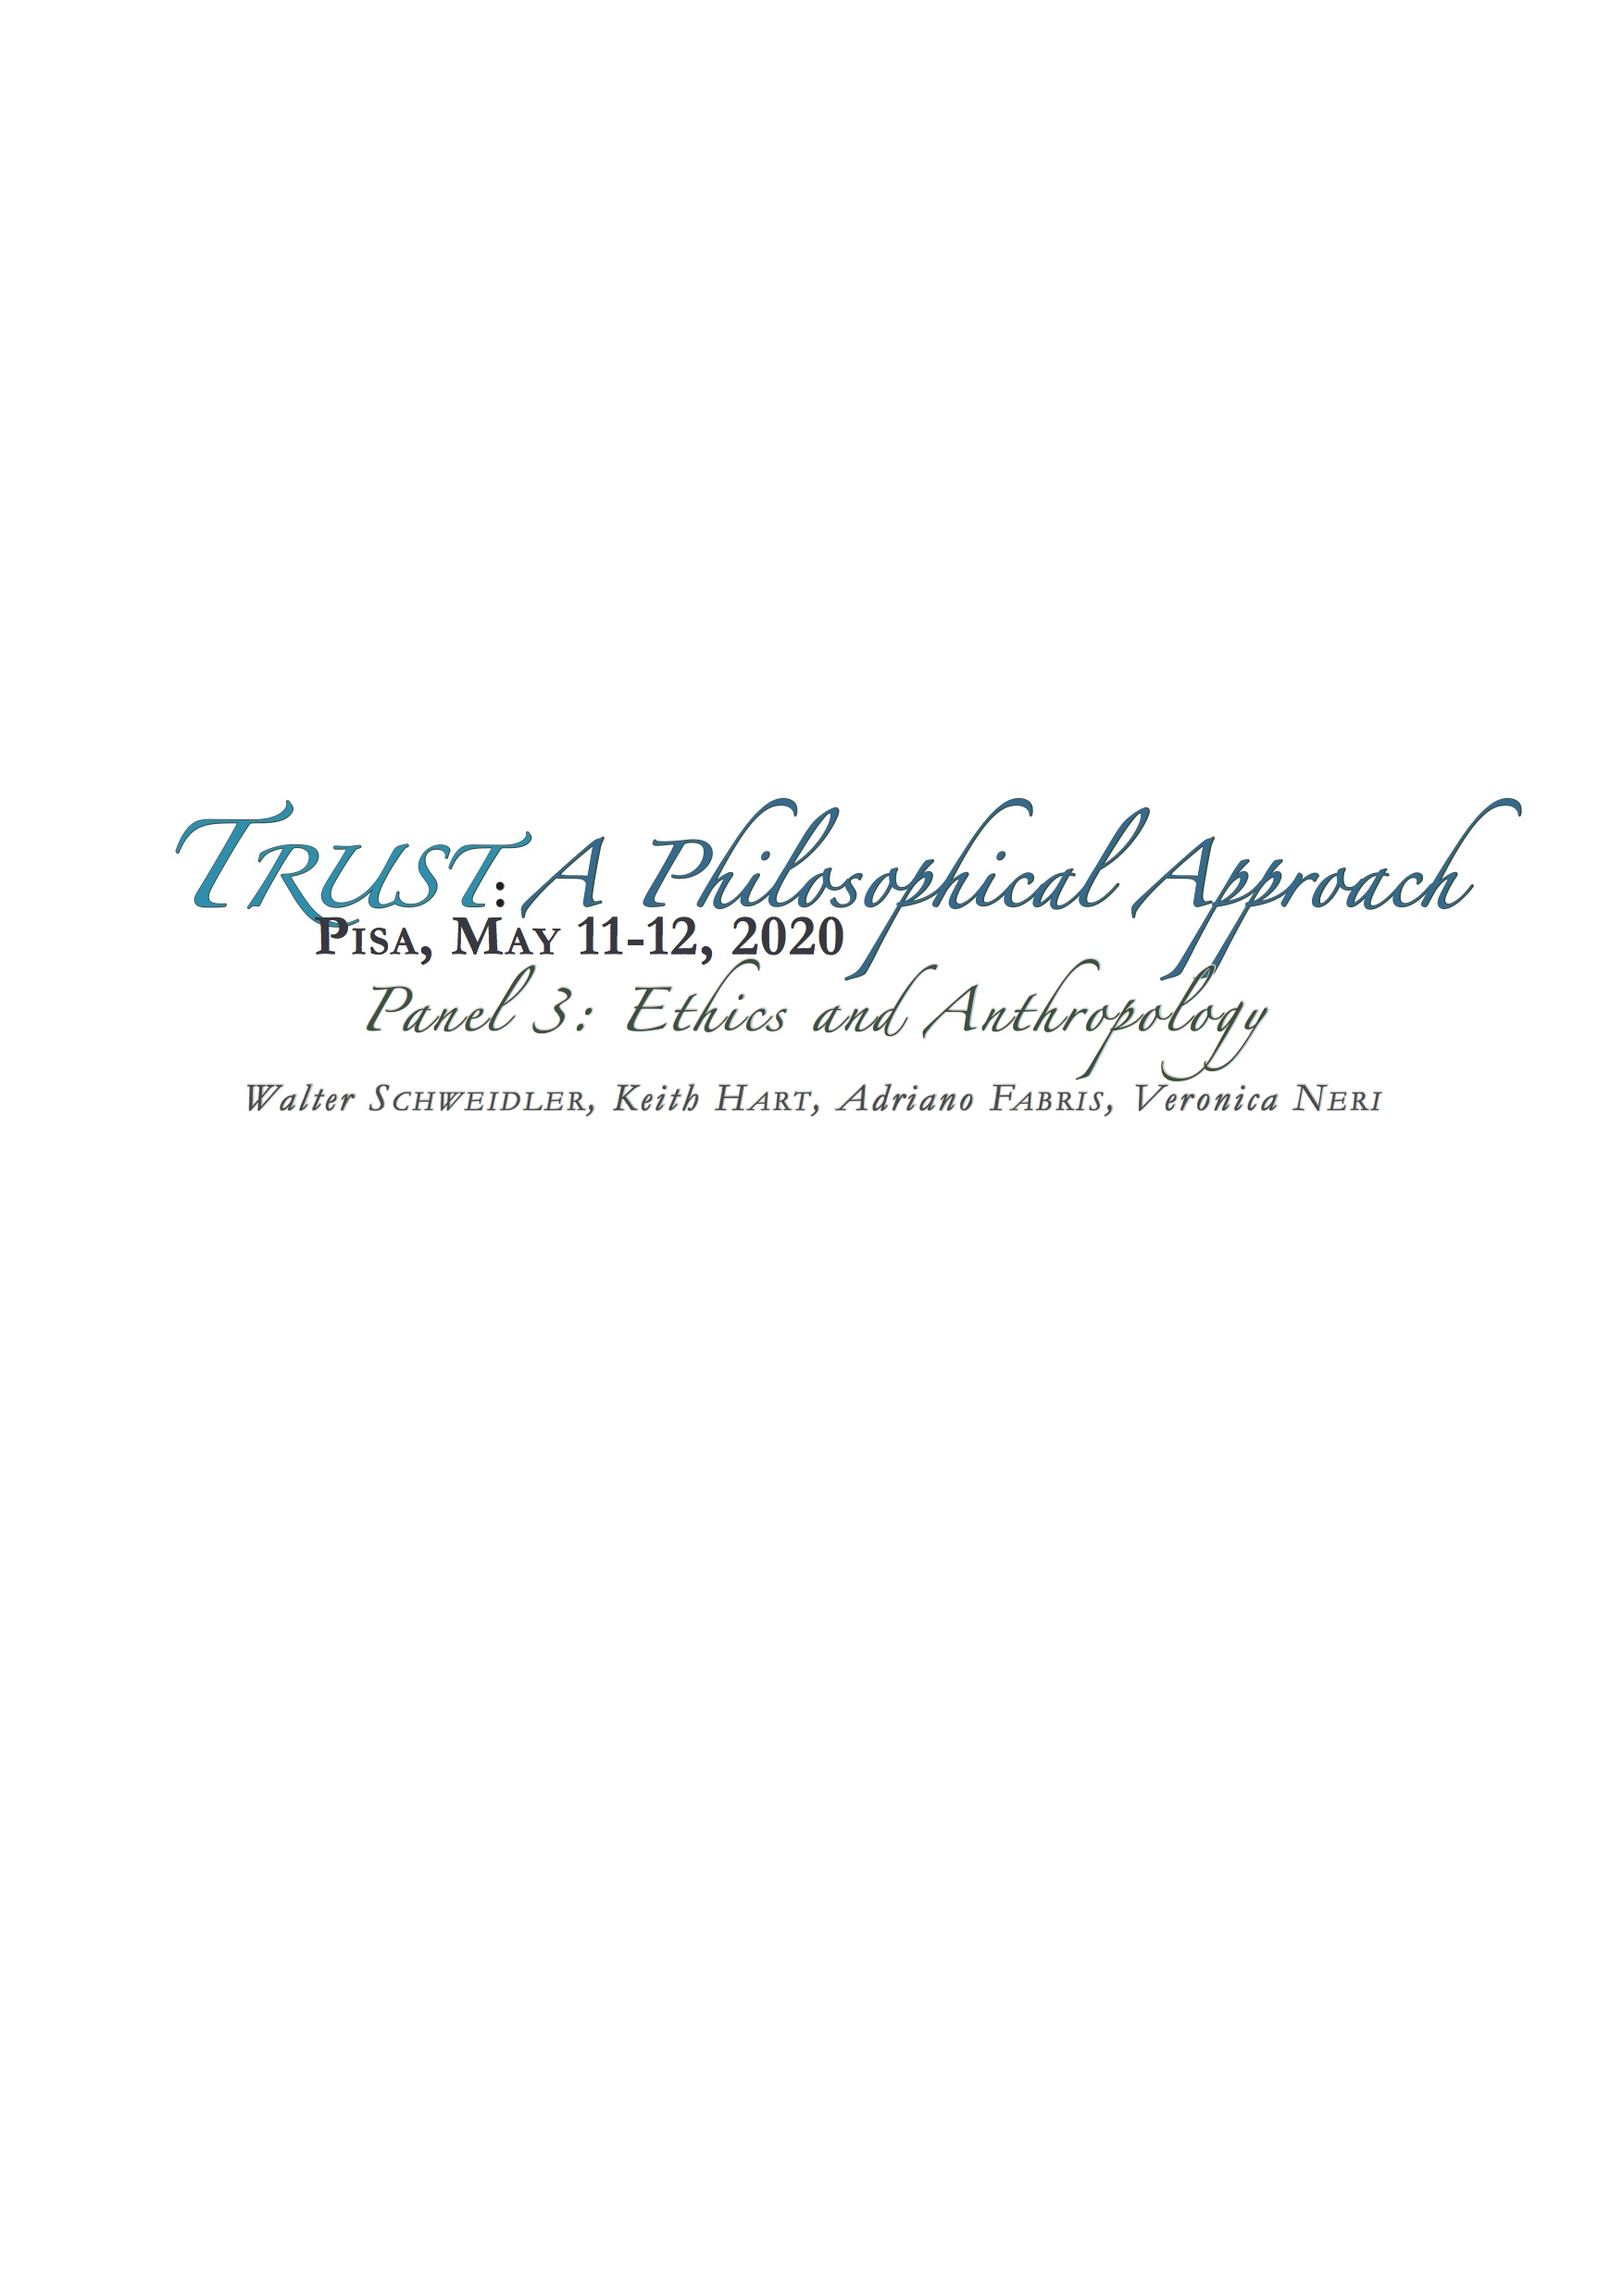 TRUST: A PHILOSOPHICAL APPROACH – PANEL 3